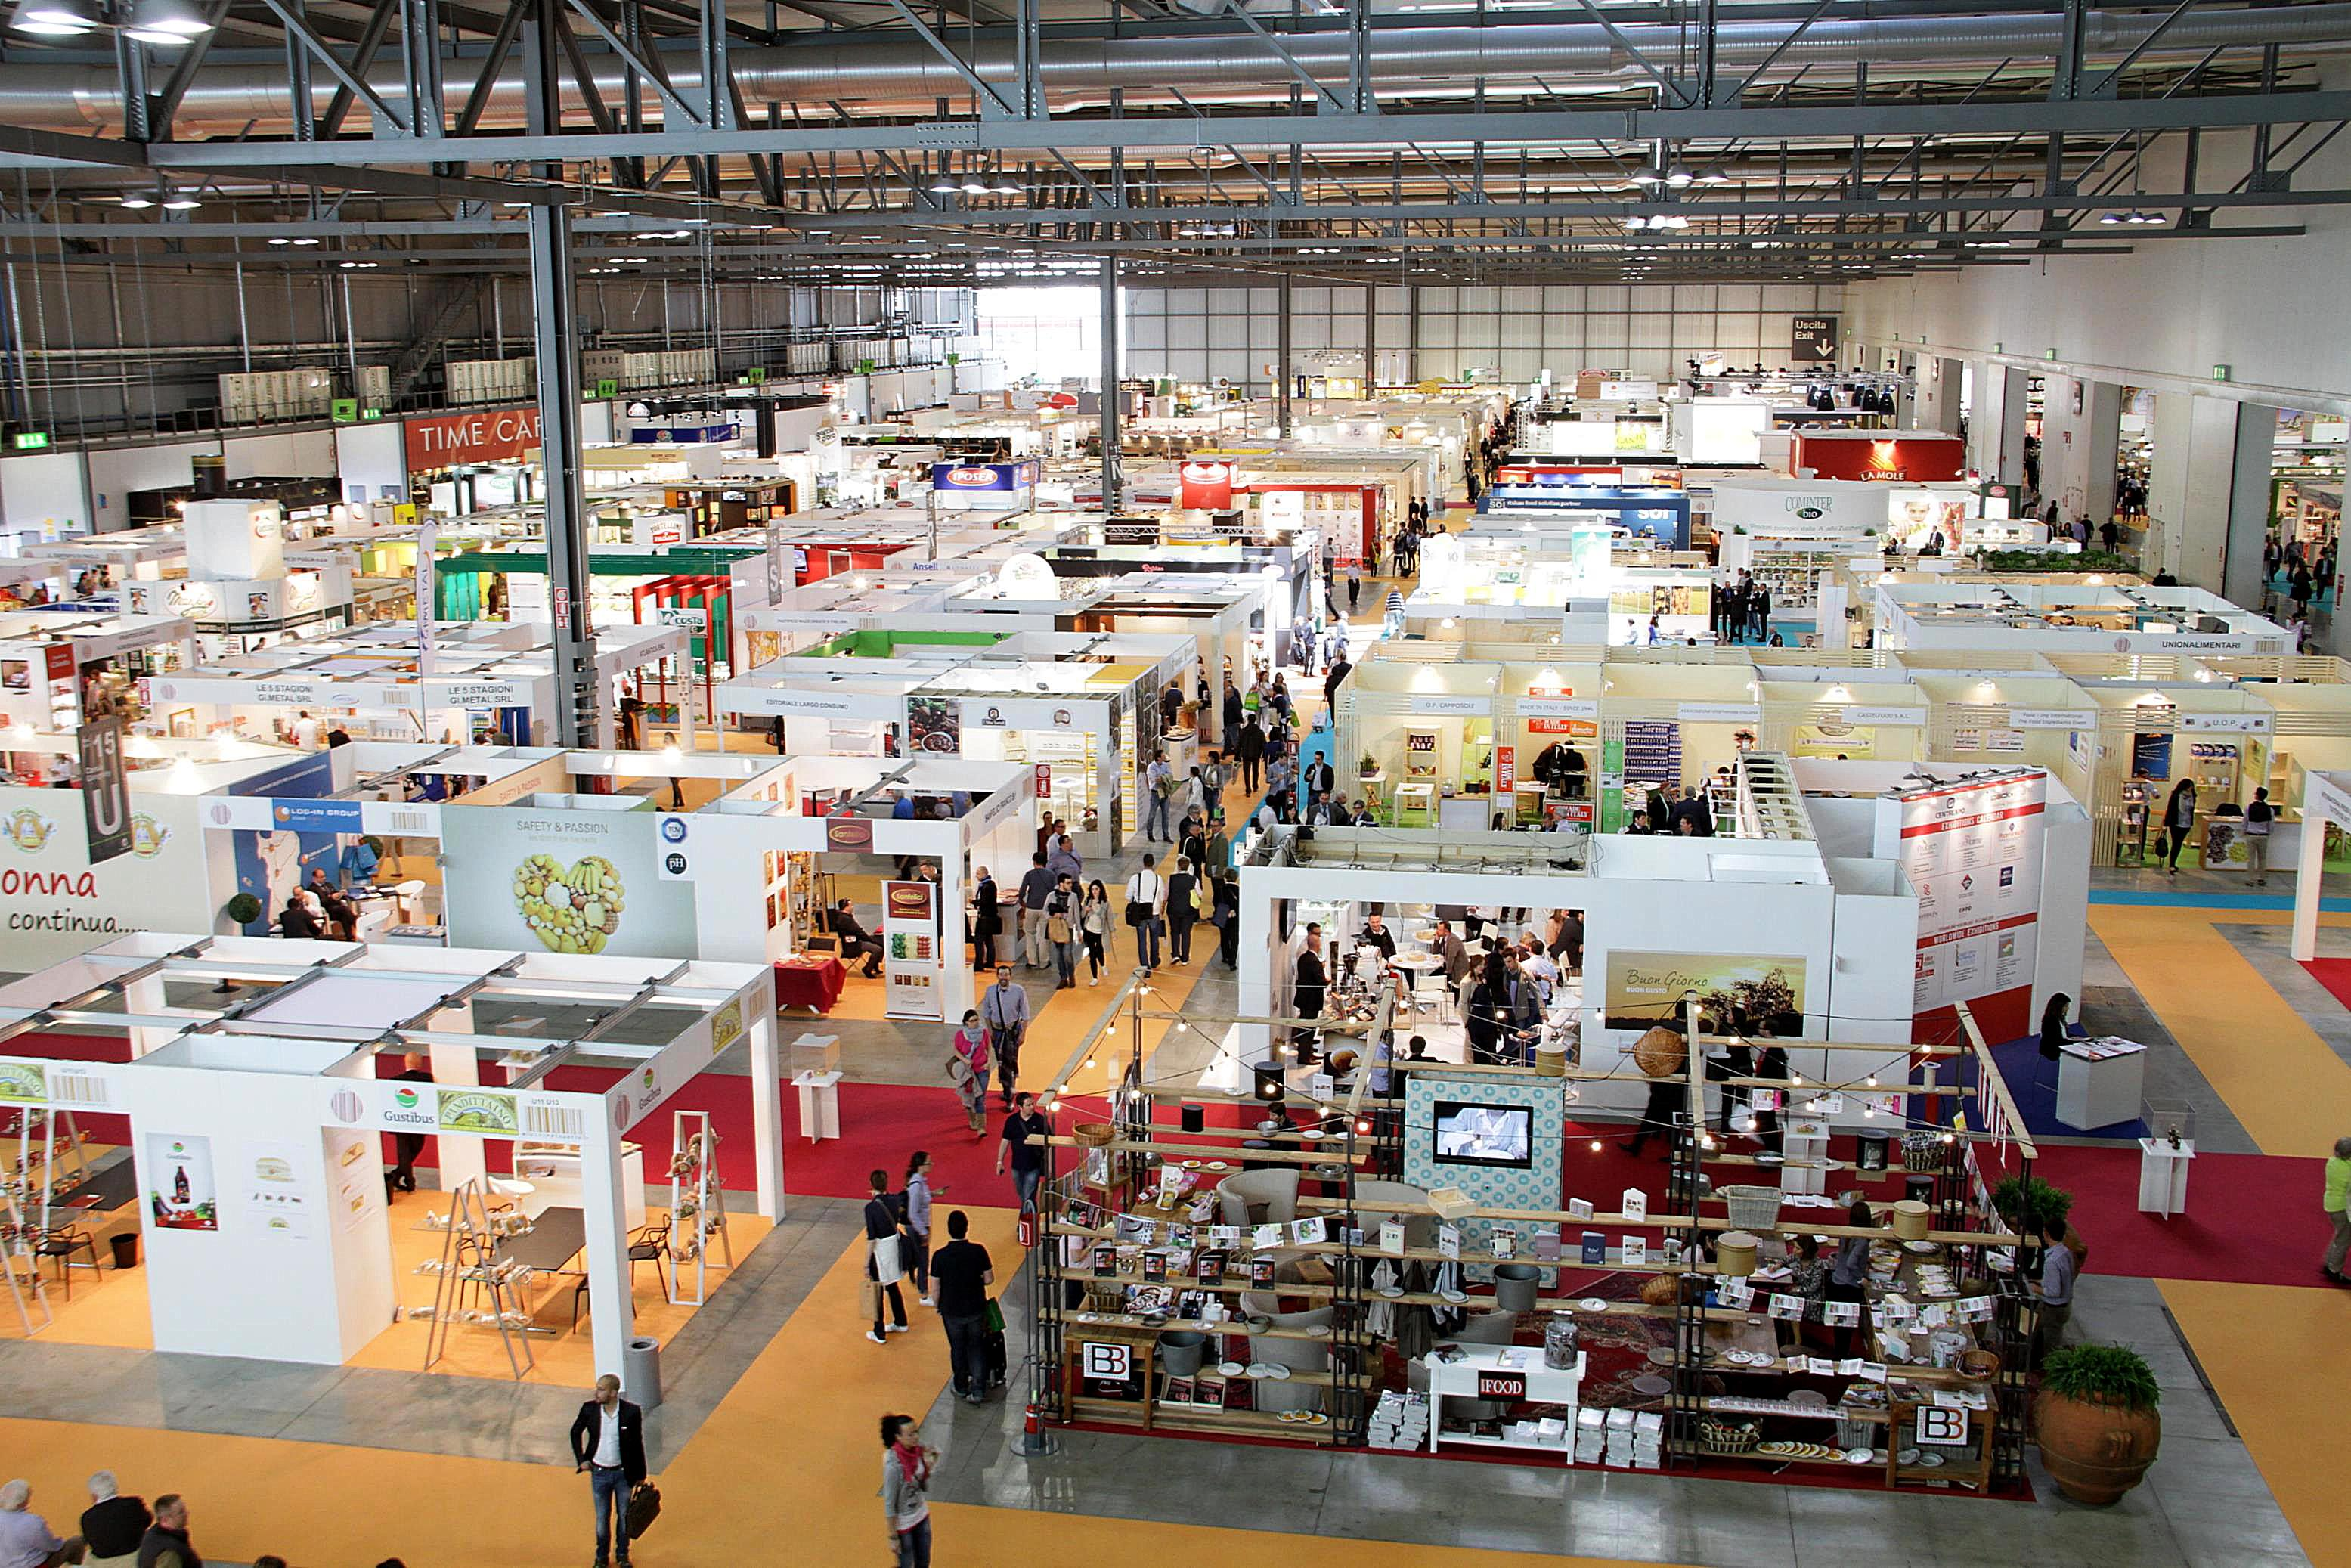 Fiera milano archives mixer planet for Fiera milano 2016